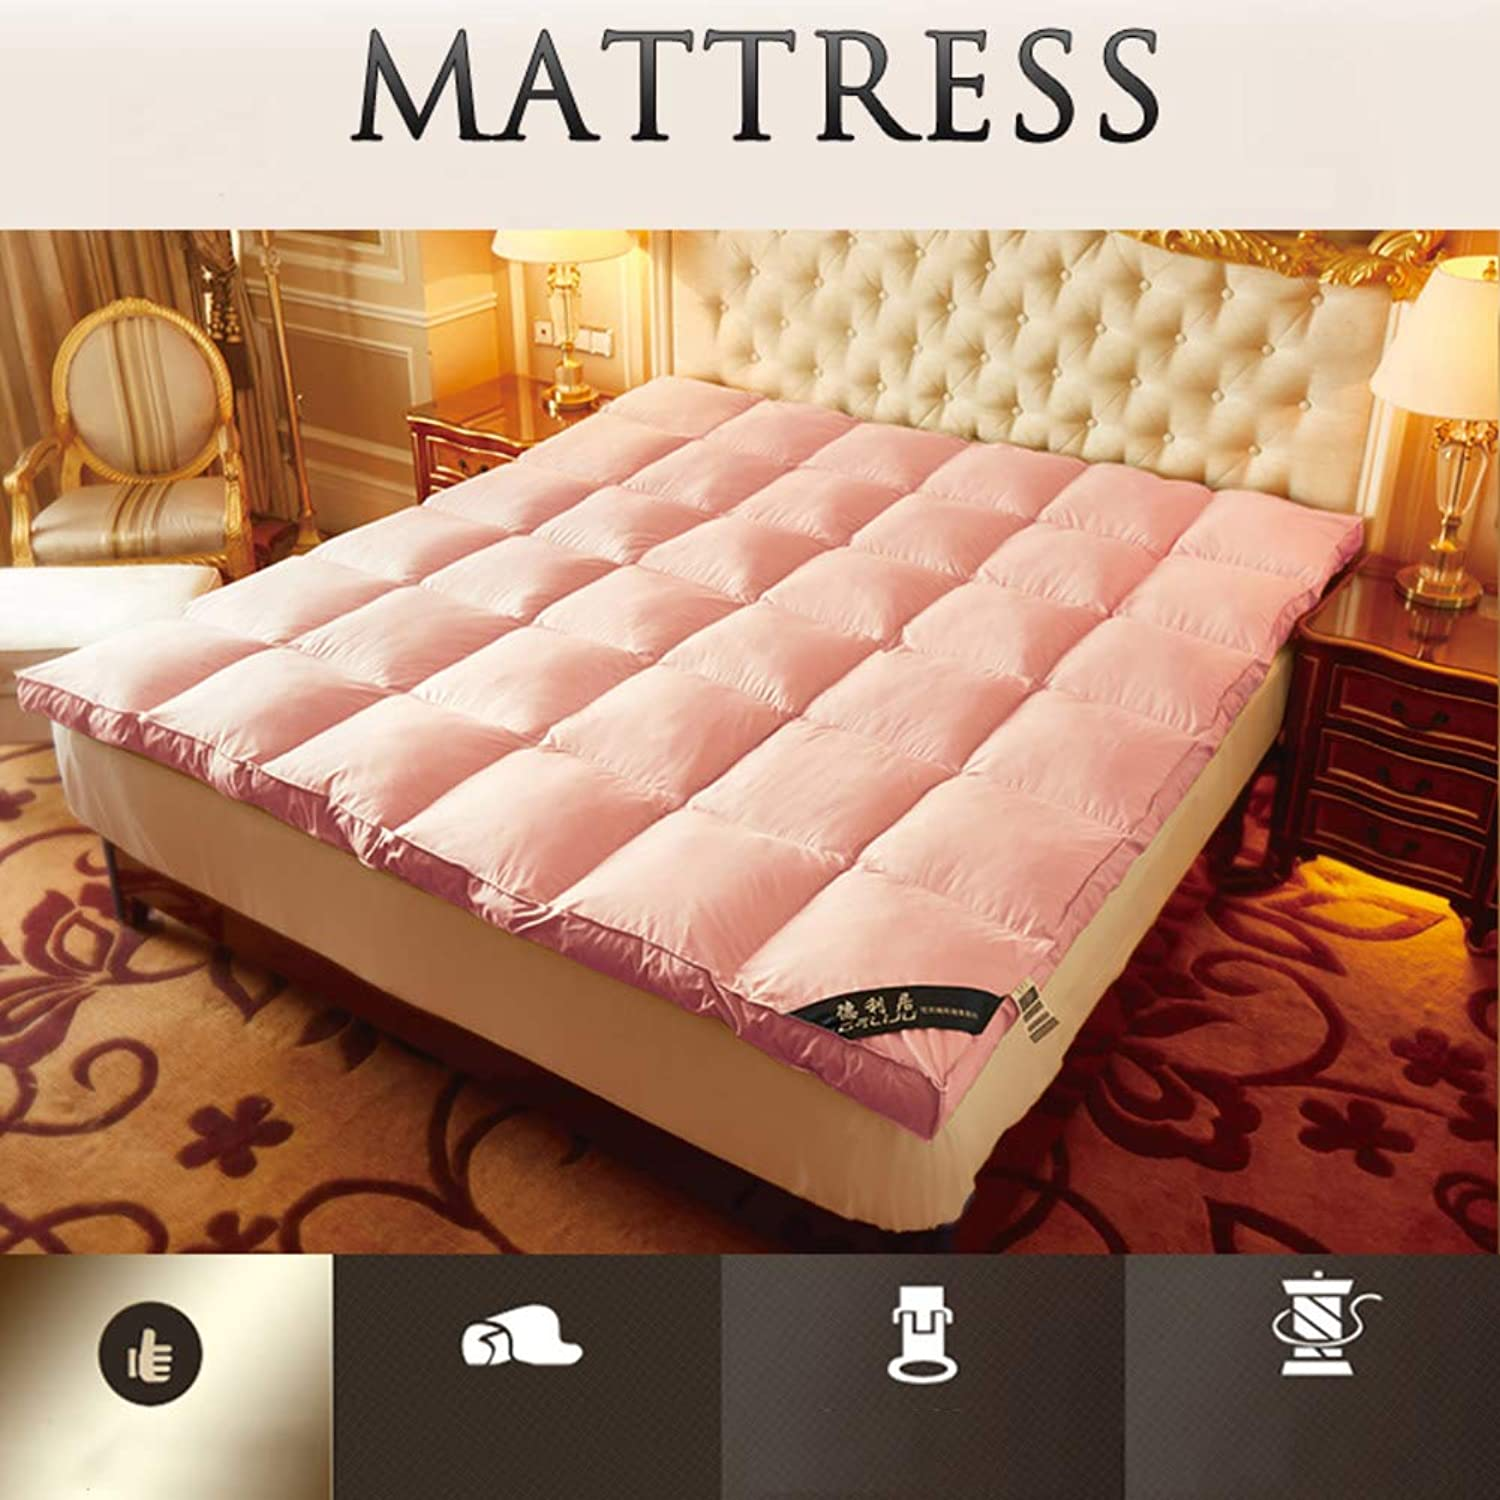 Thicken Mattress Pads,Foldable Tatami Mattress,Polyester Non-Slip Solid color Japanese Hotel Overfilled Soft Mattress Predector-Pink 90x200cm(35x79inch)